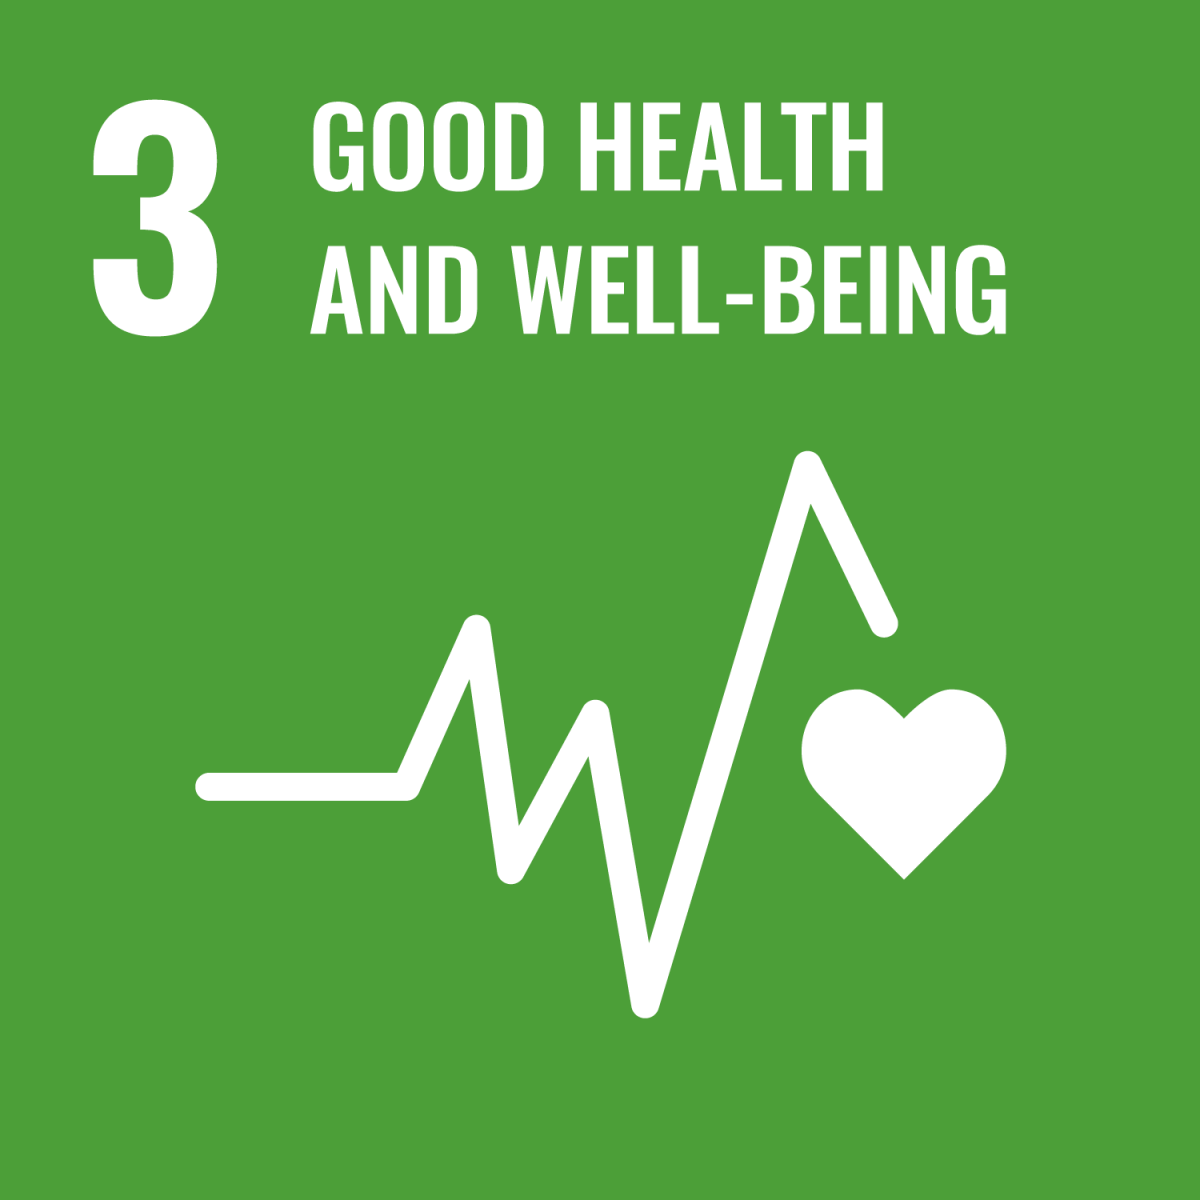 SDG 3 - Good Health and Well-being